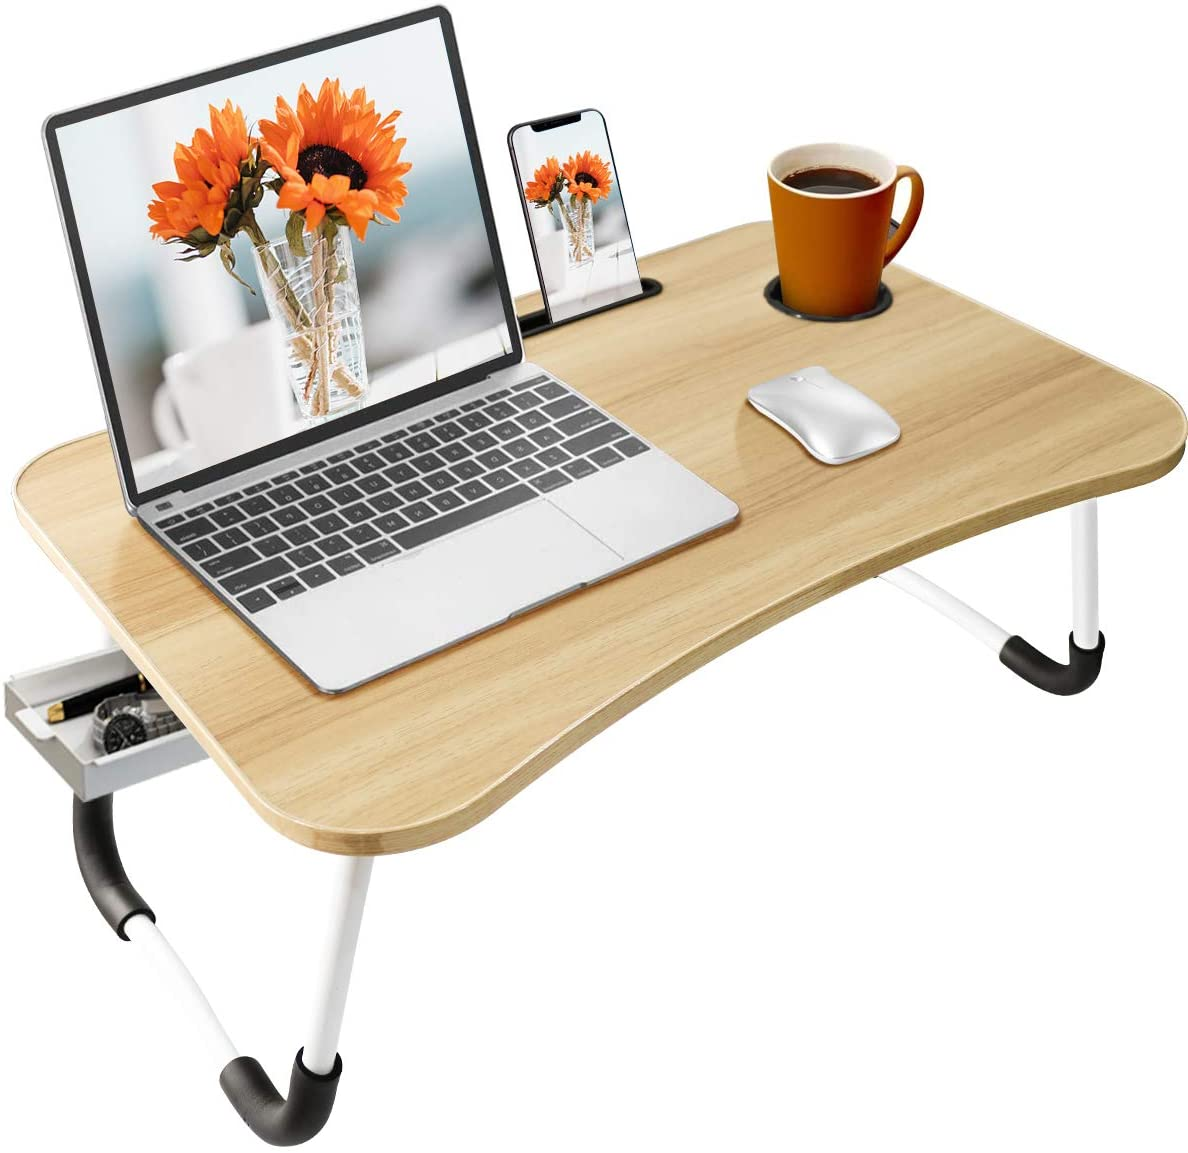 Review of BOPUROY Laptop Desk Foldable Bed Table Portable Multi-Function Lap Bed Tray Table